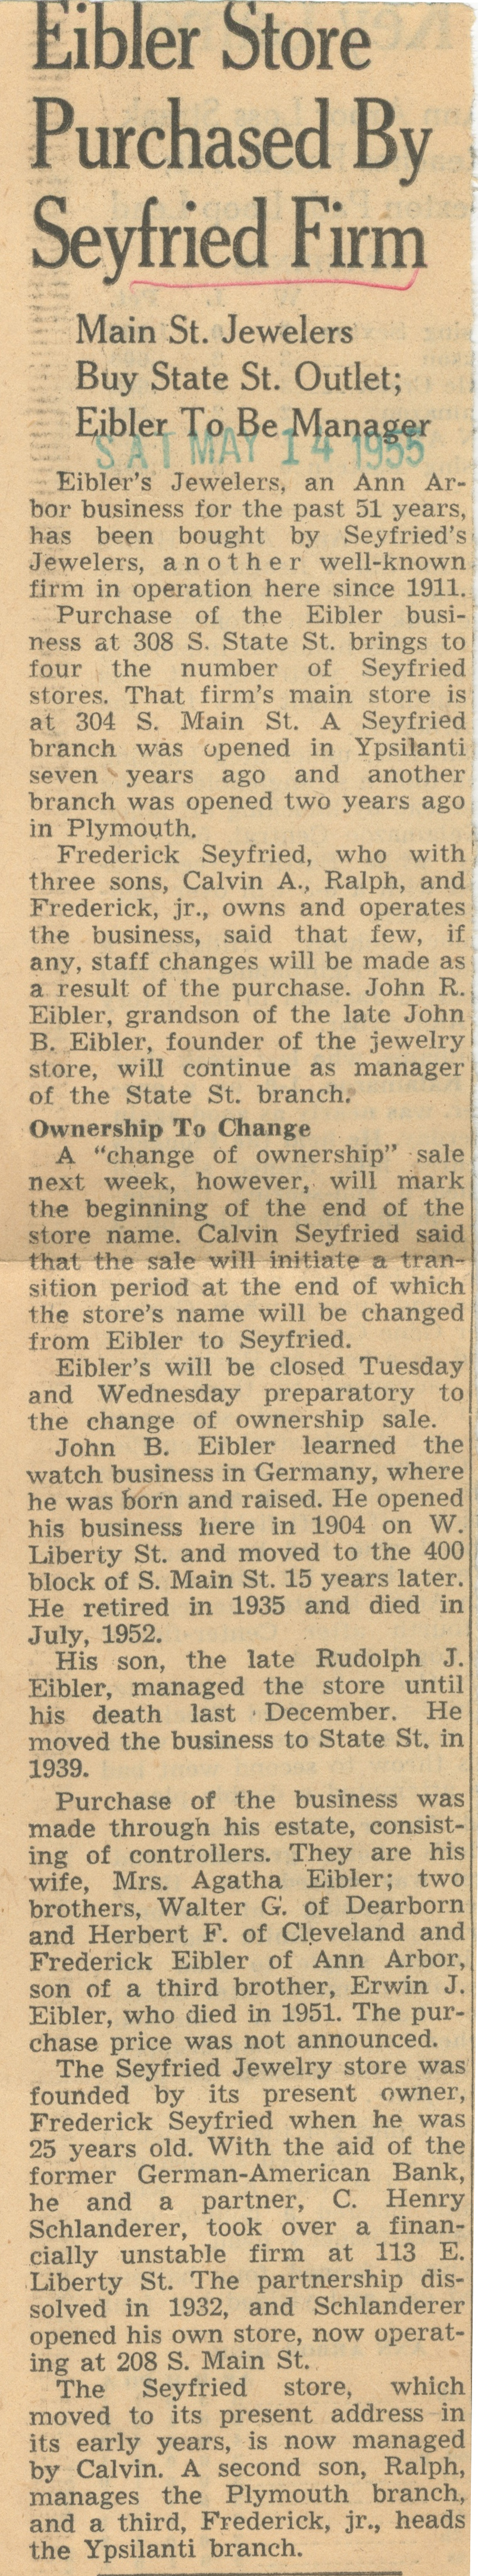 Eibler Store Purchased By Seyfried Firm - Main St. Jewelers Buy State St. Outlet; Eibler To Be Manager image